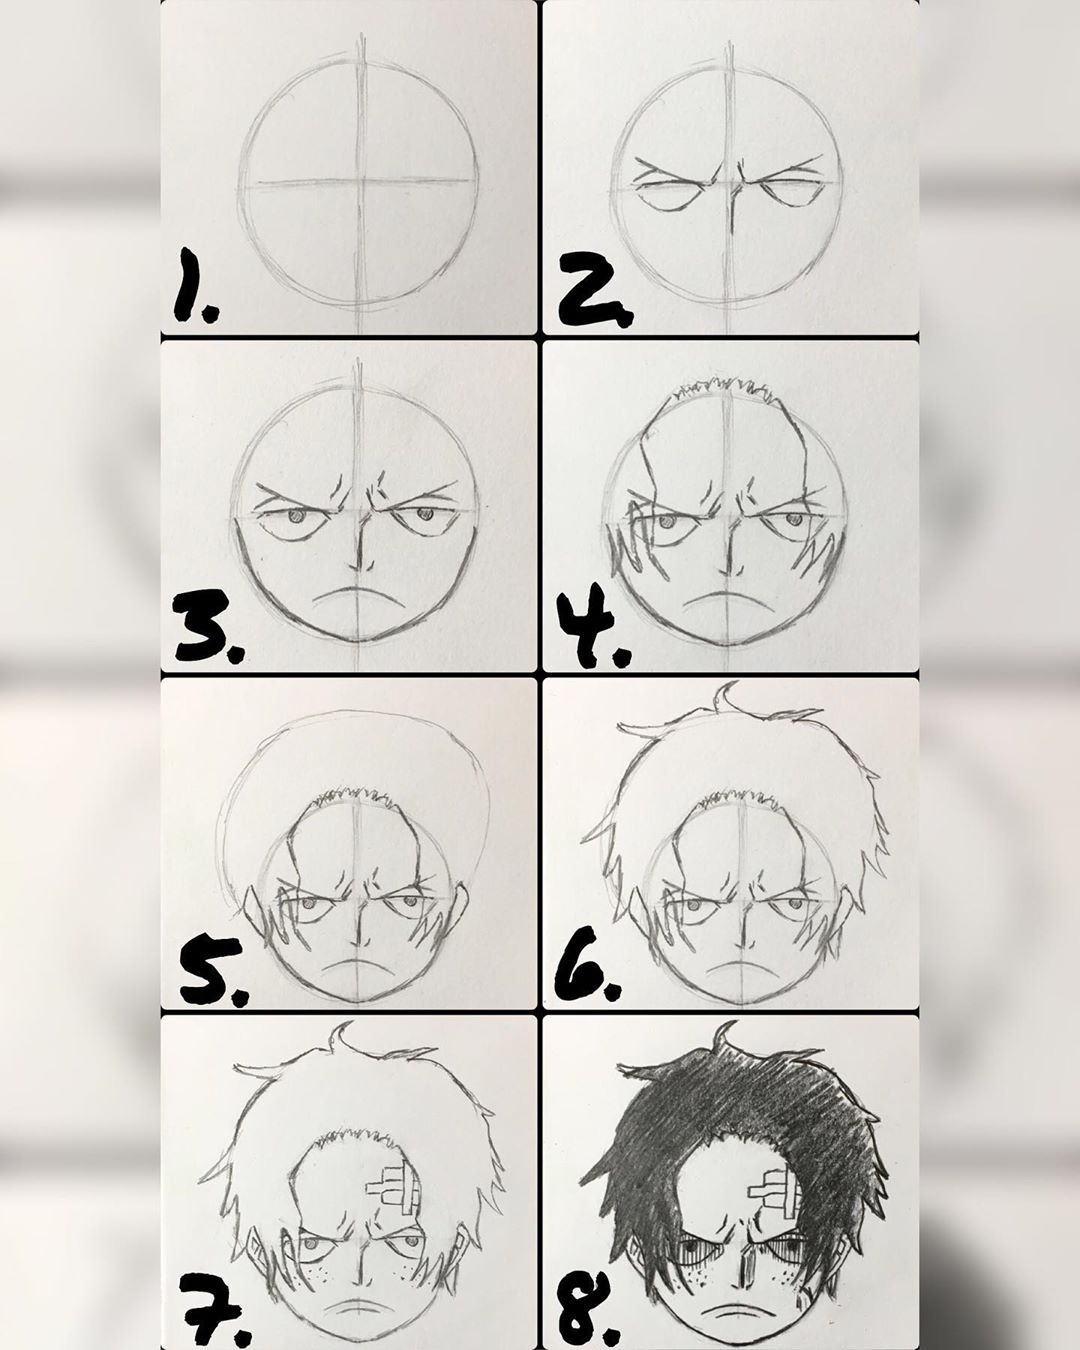 anime boy drawing easy step by step